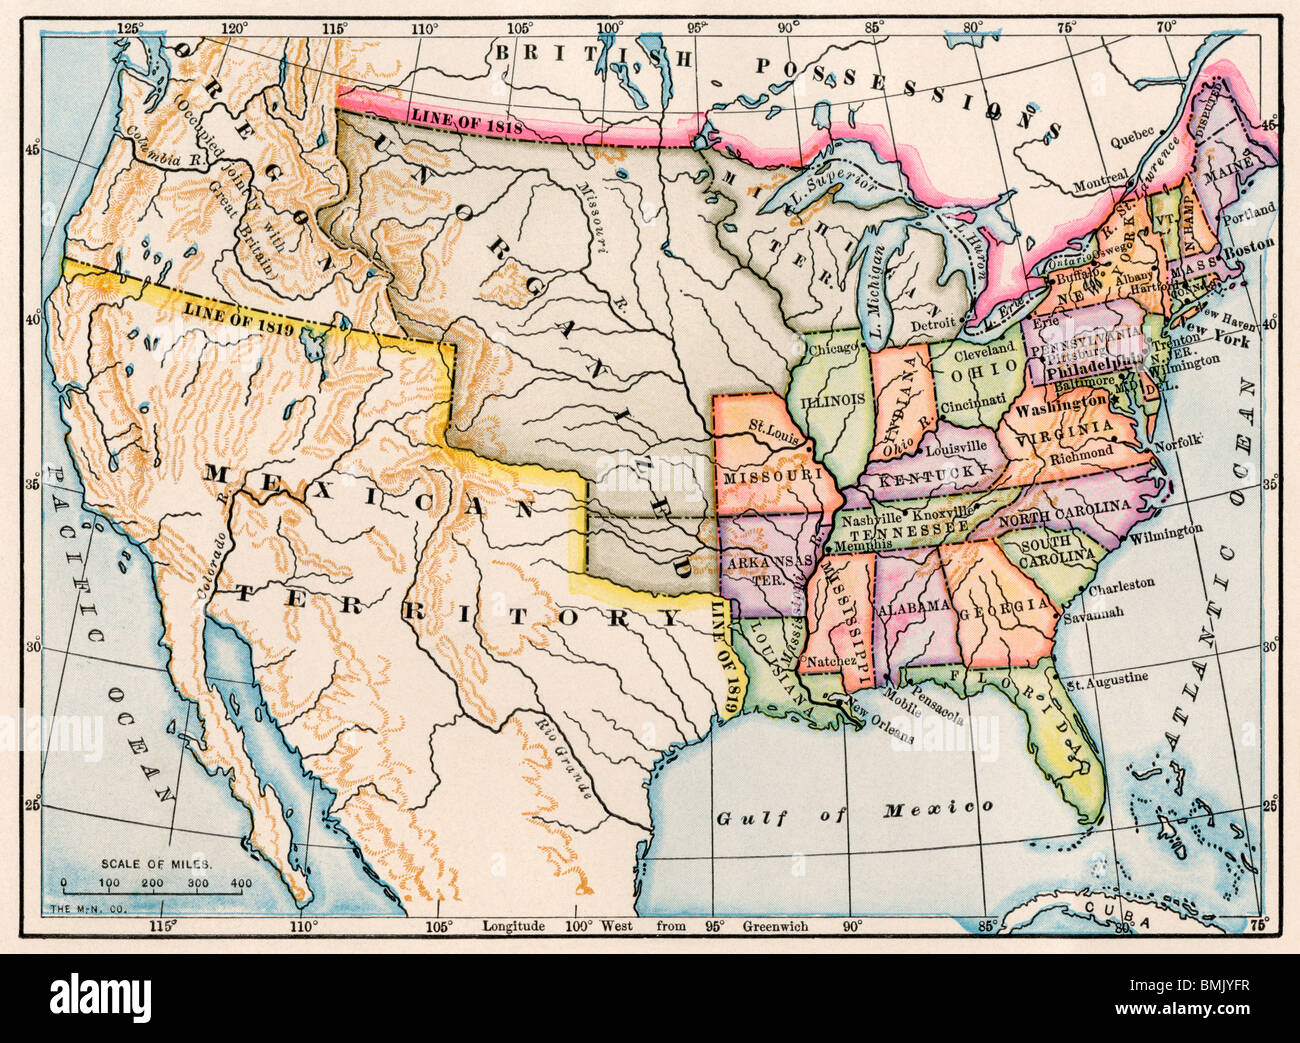 Territories of the United States in 1830. Color lithograph - Stock Image